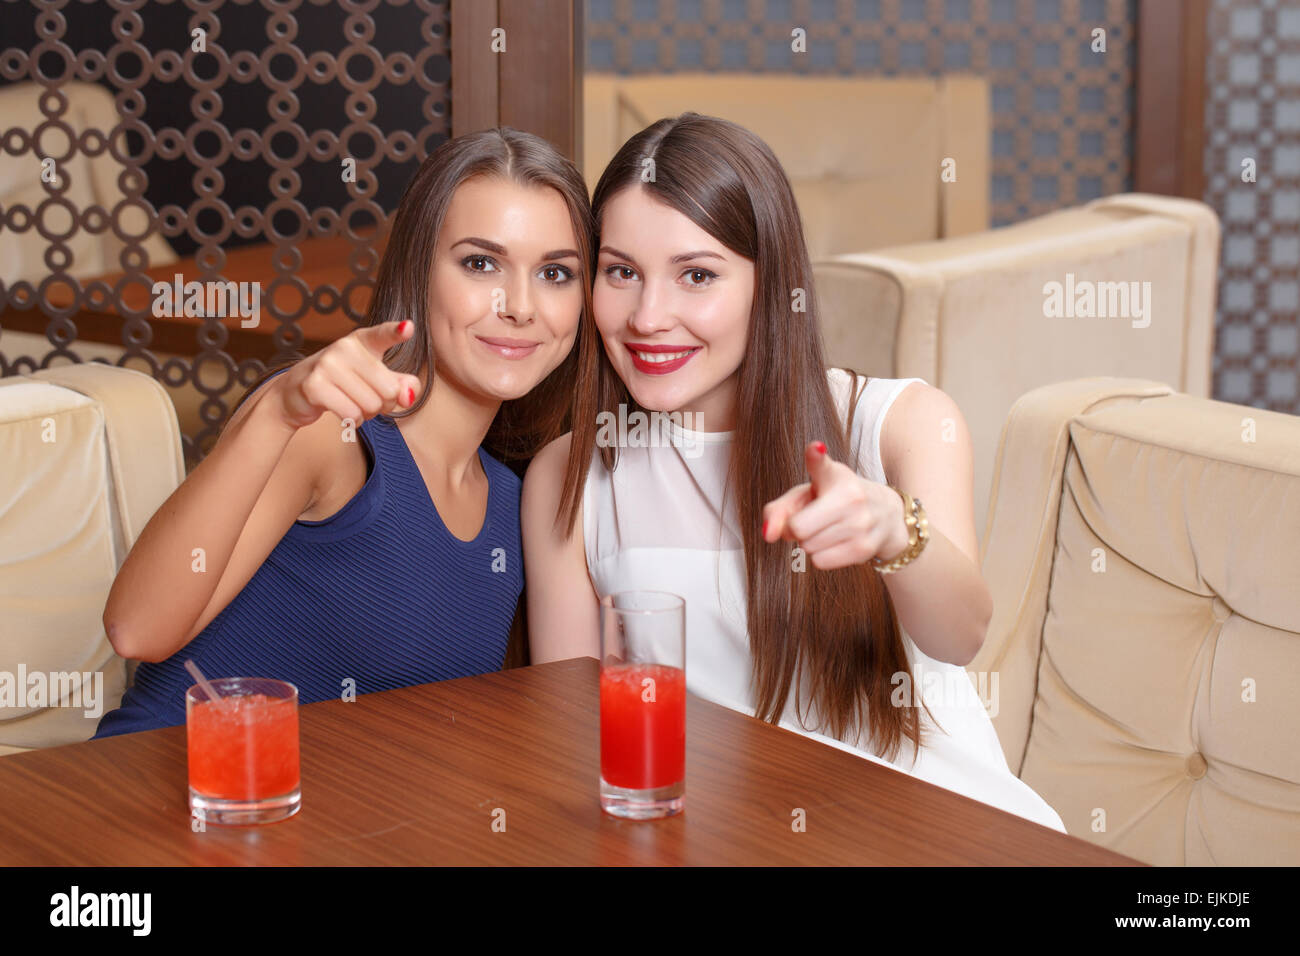 Women have fun at the party - Stock Image